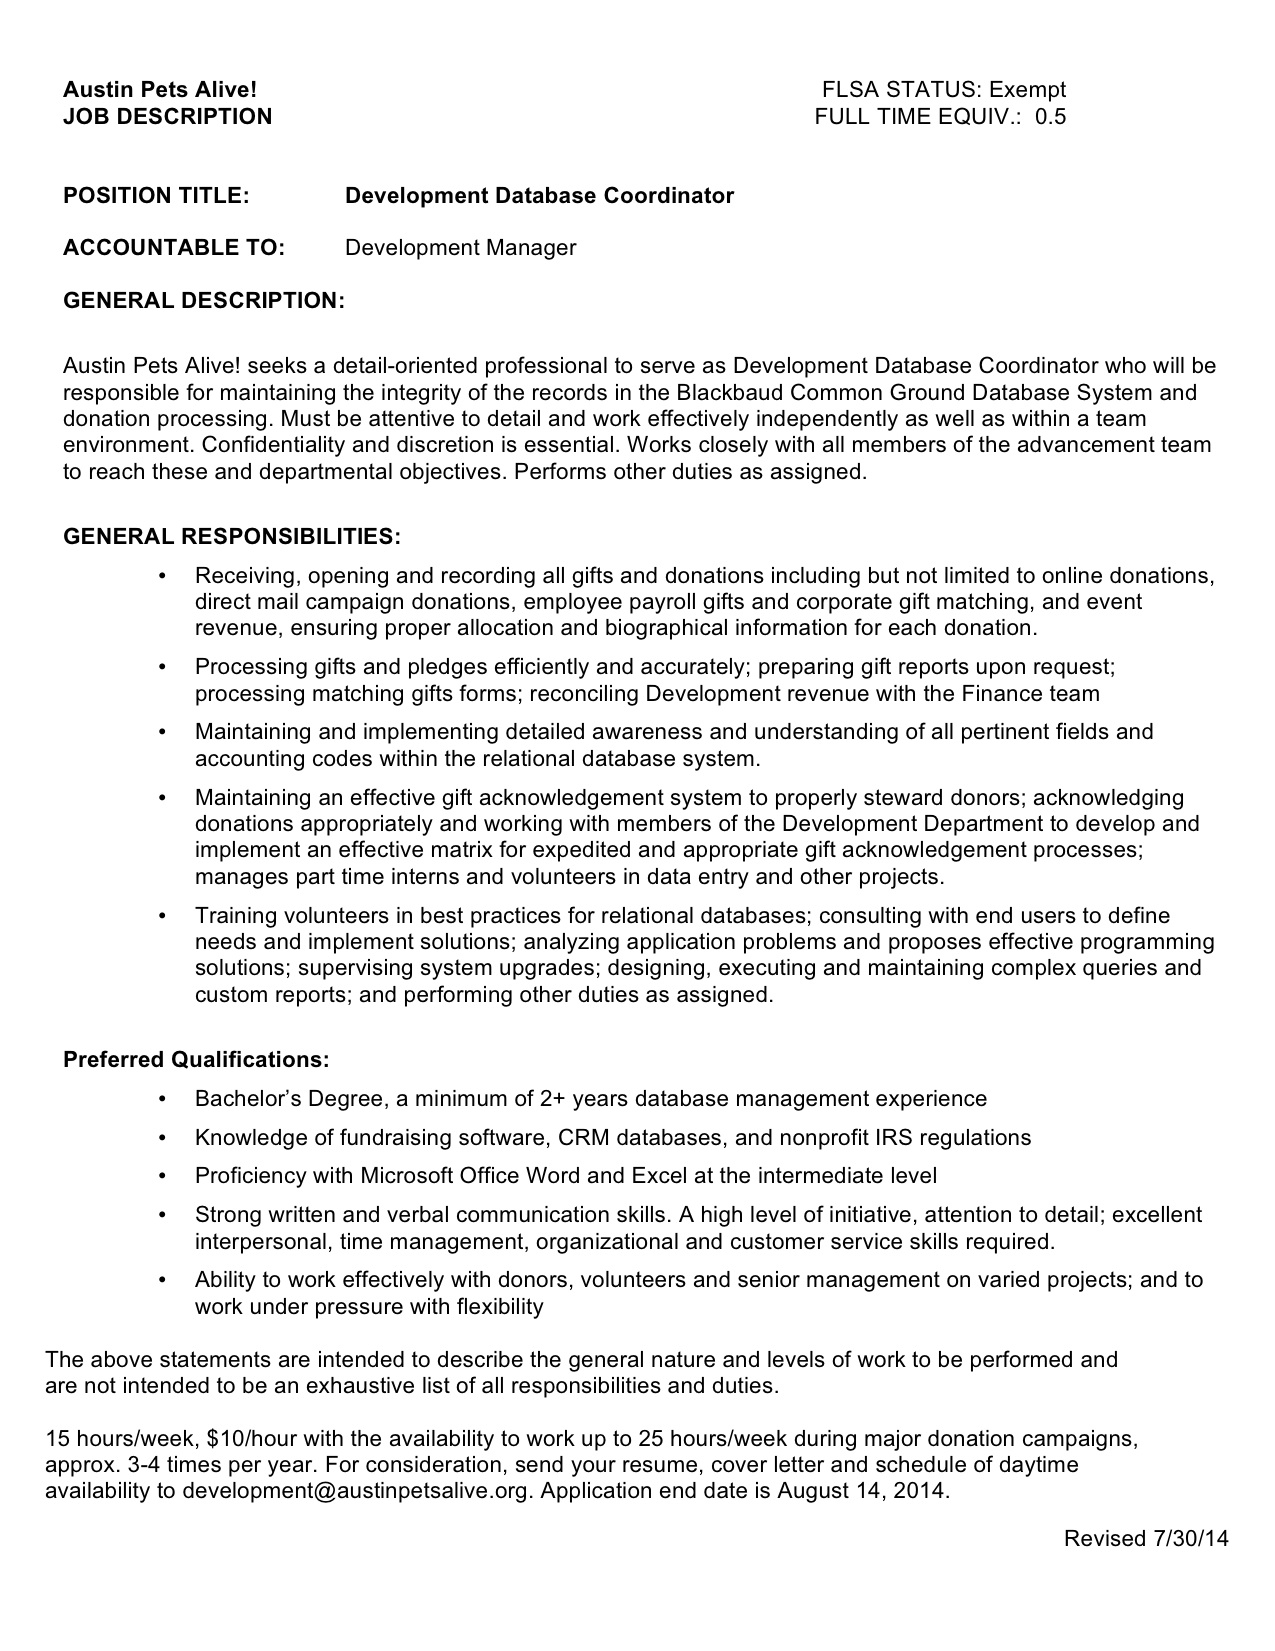 Development Worker Cover Letter